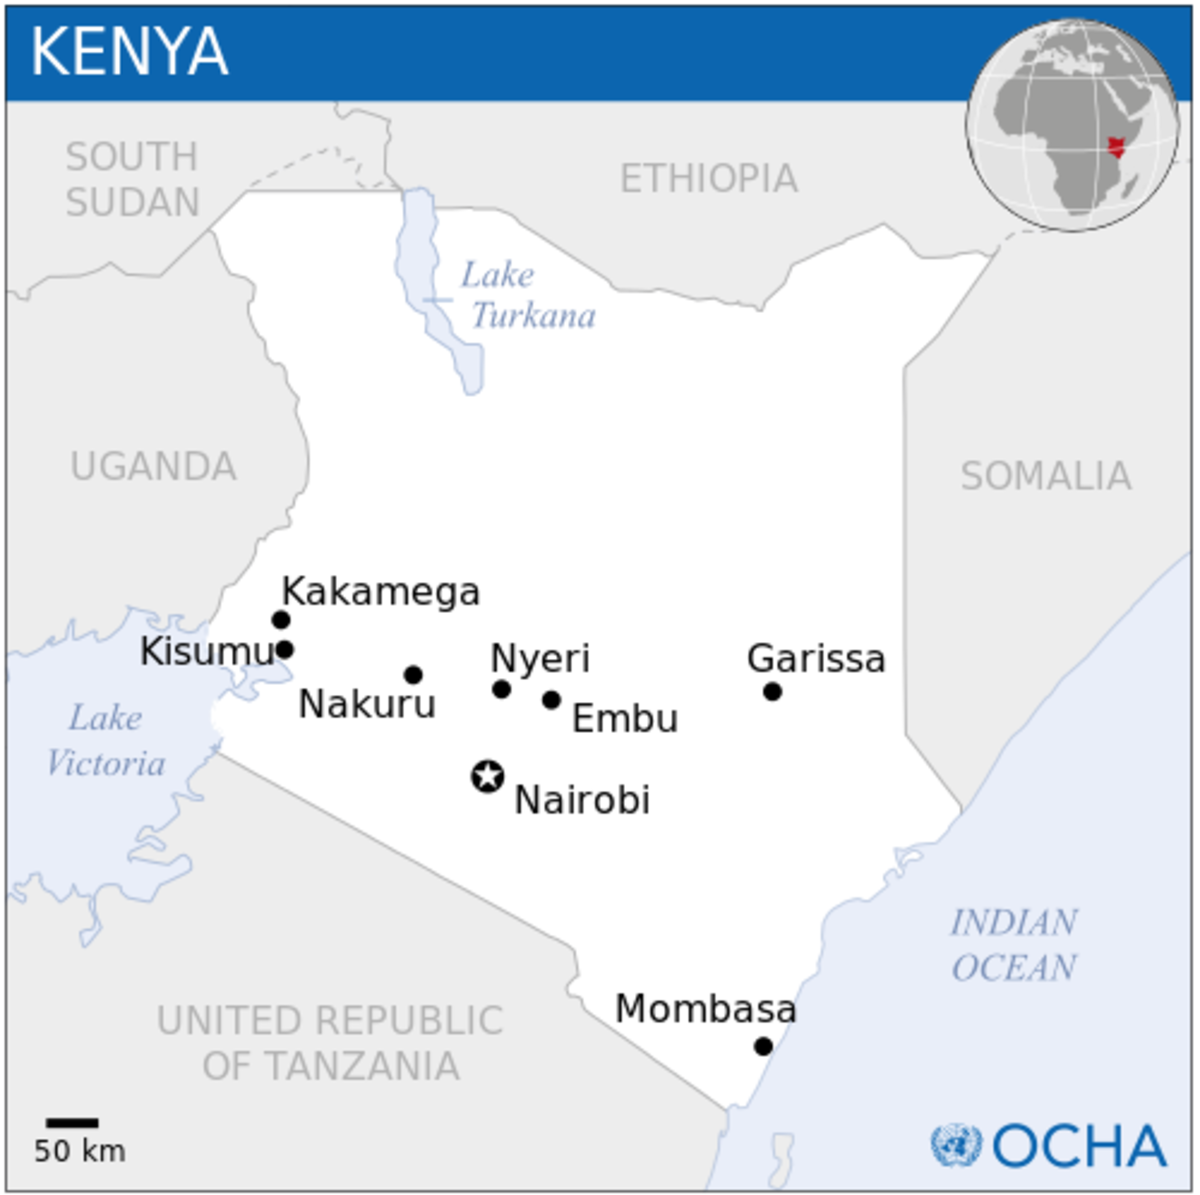 Locator map of Kenya.